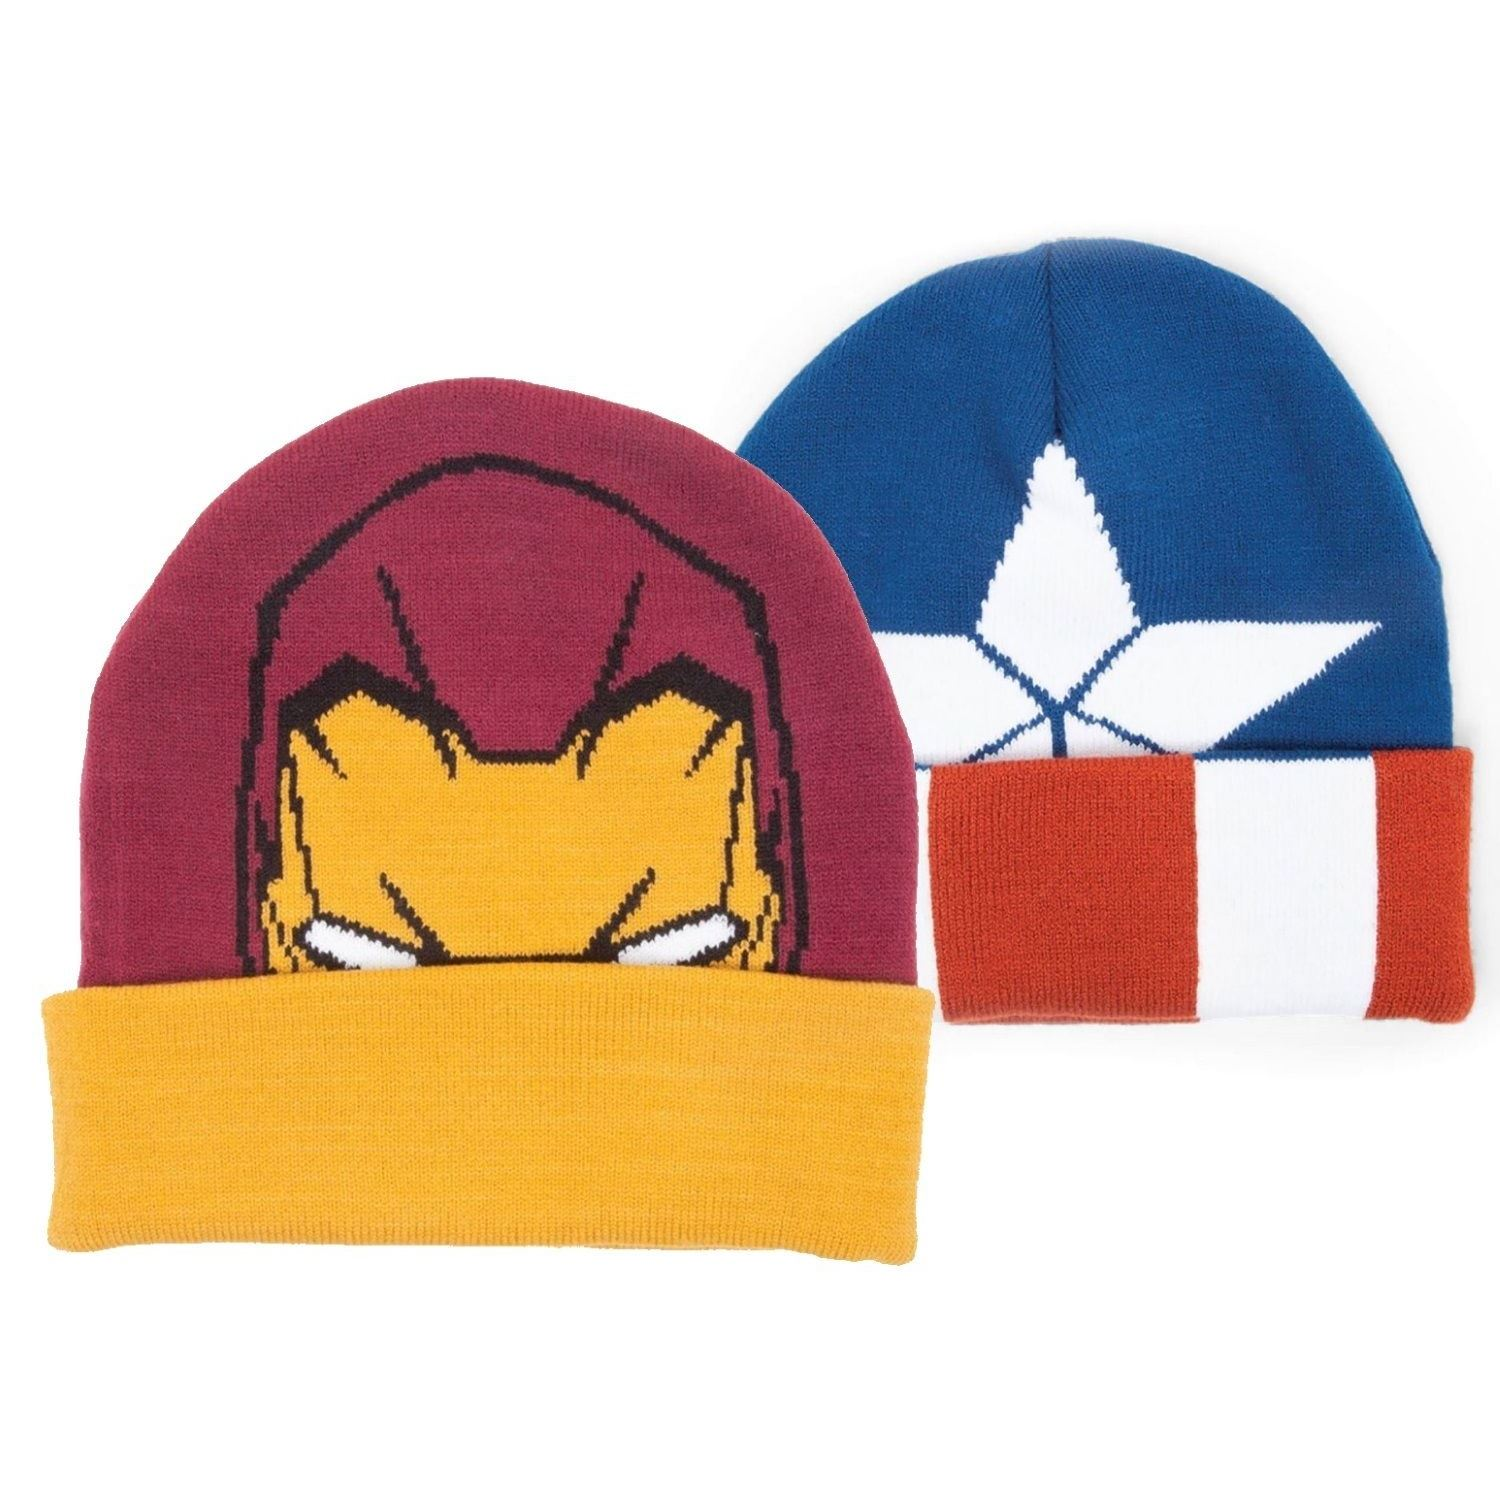 Details about Marvel Avengers Civil War Beanie Hat Unisex Mens Womens  Woolly Winter Hats 58db63489b5